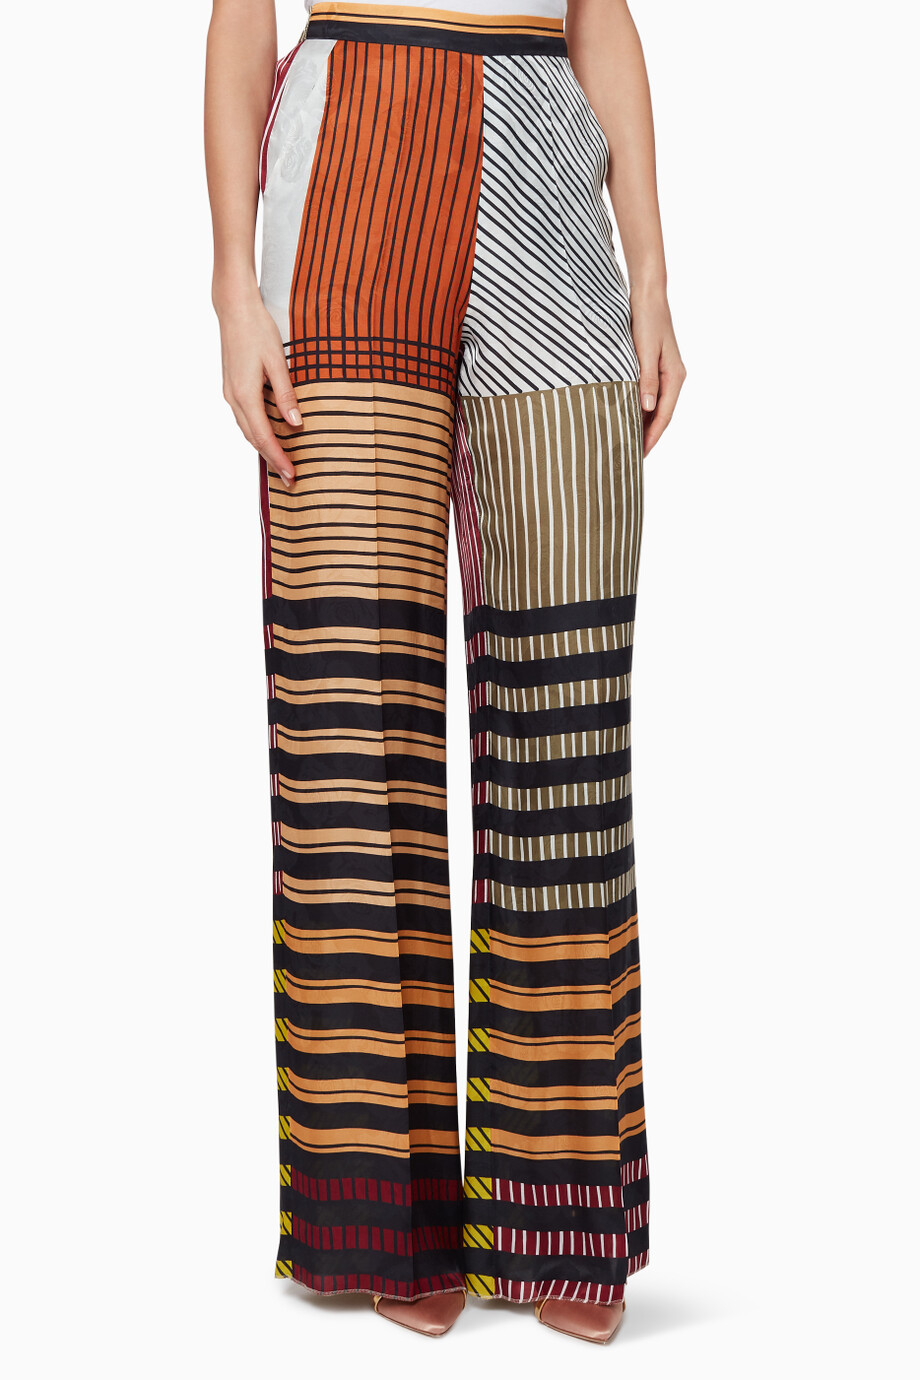 cf6f82ec8be45 Shop Etro Multicolour Multi-Coloured Palazzo Pants for Women ...